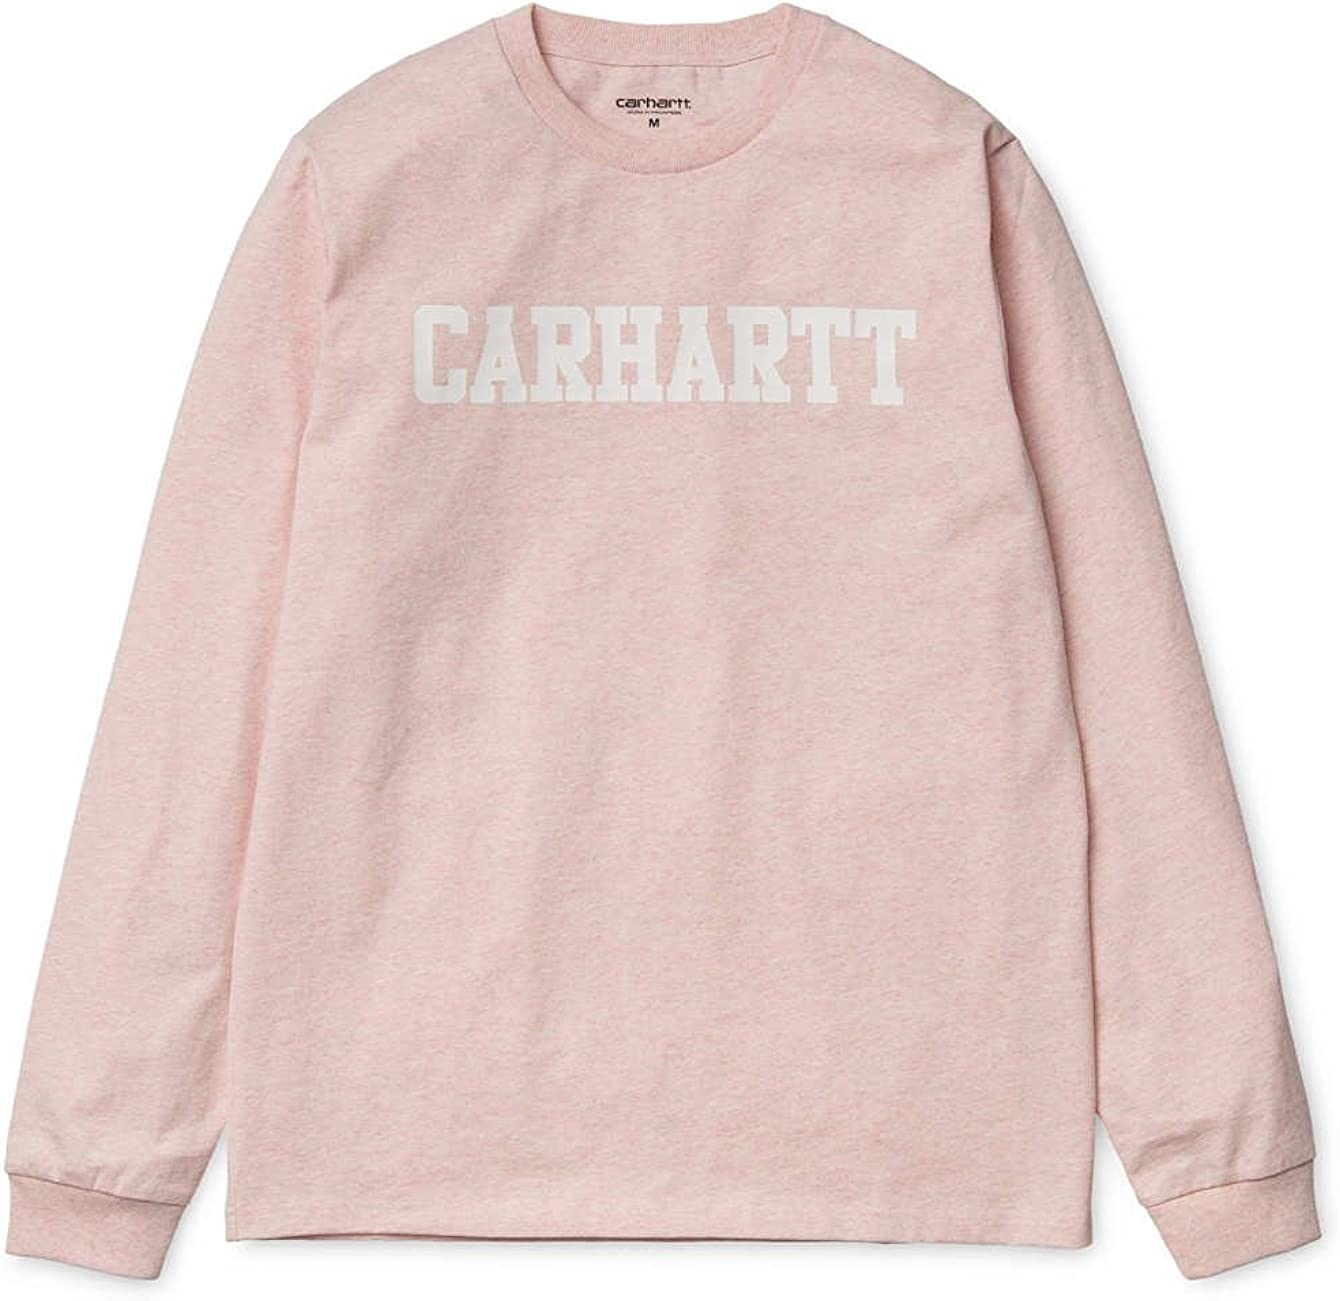 Carhartt - Camiseta de manga larga - para hombre Rosa Rose Heather X-Small: Amazon.es: Ropa y accesorios